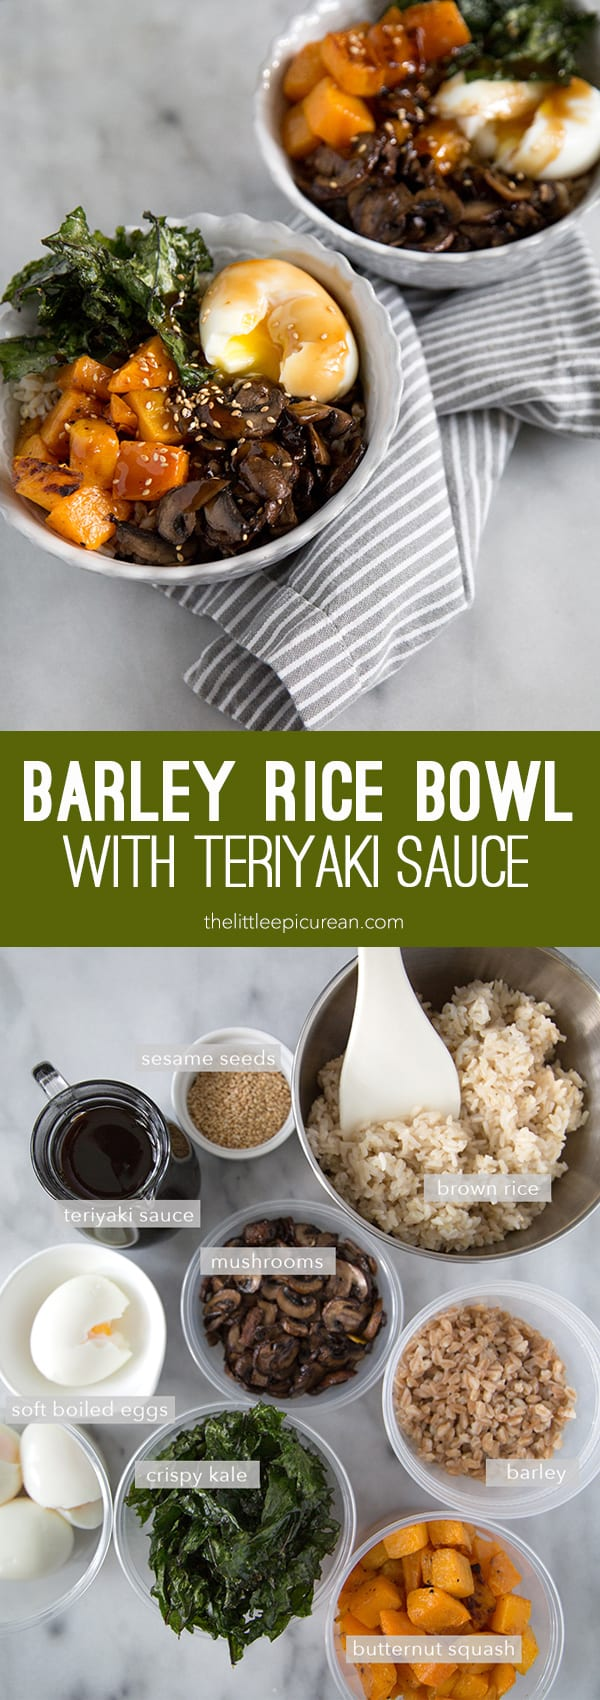 Barley Rice Bowl with Teriyaki Sauce